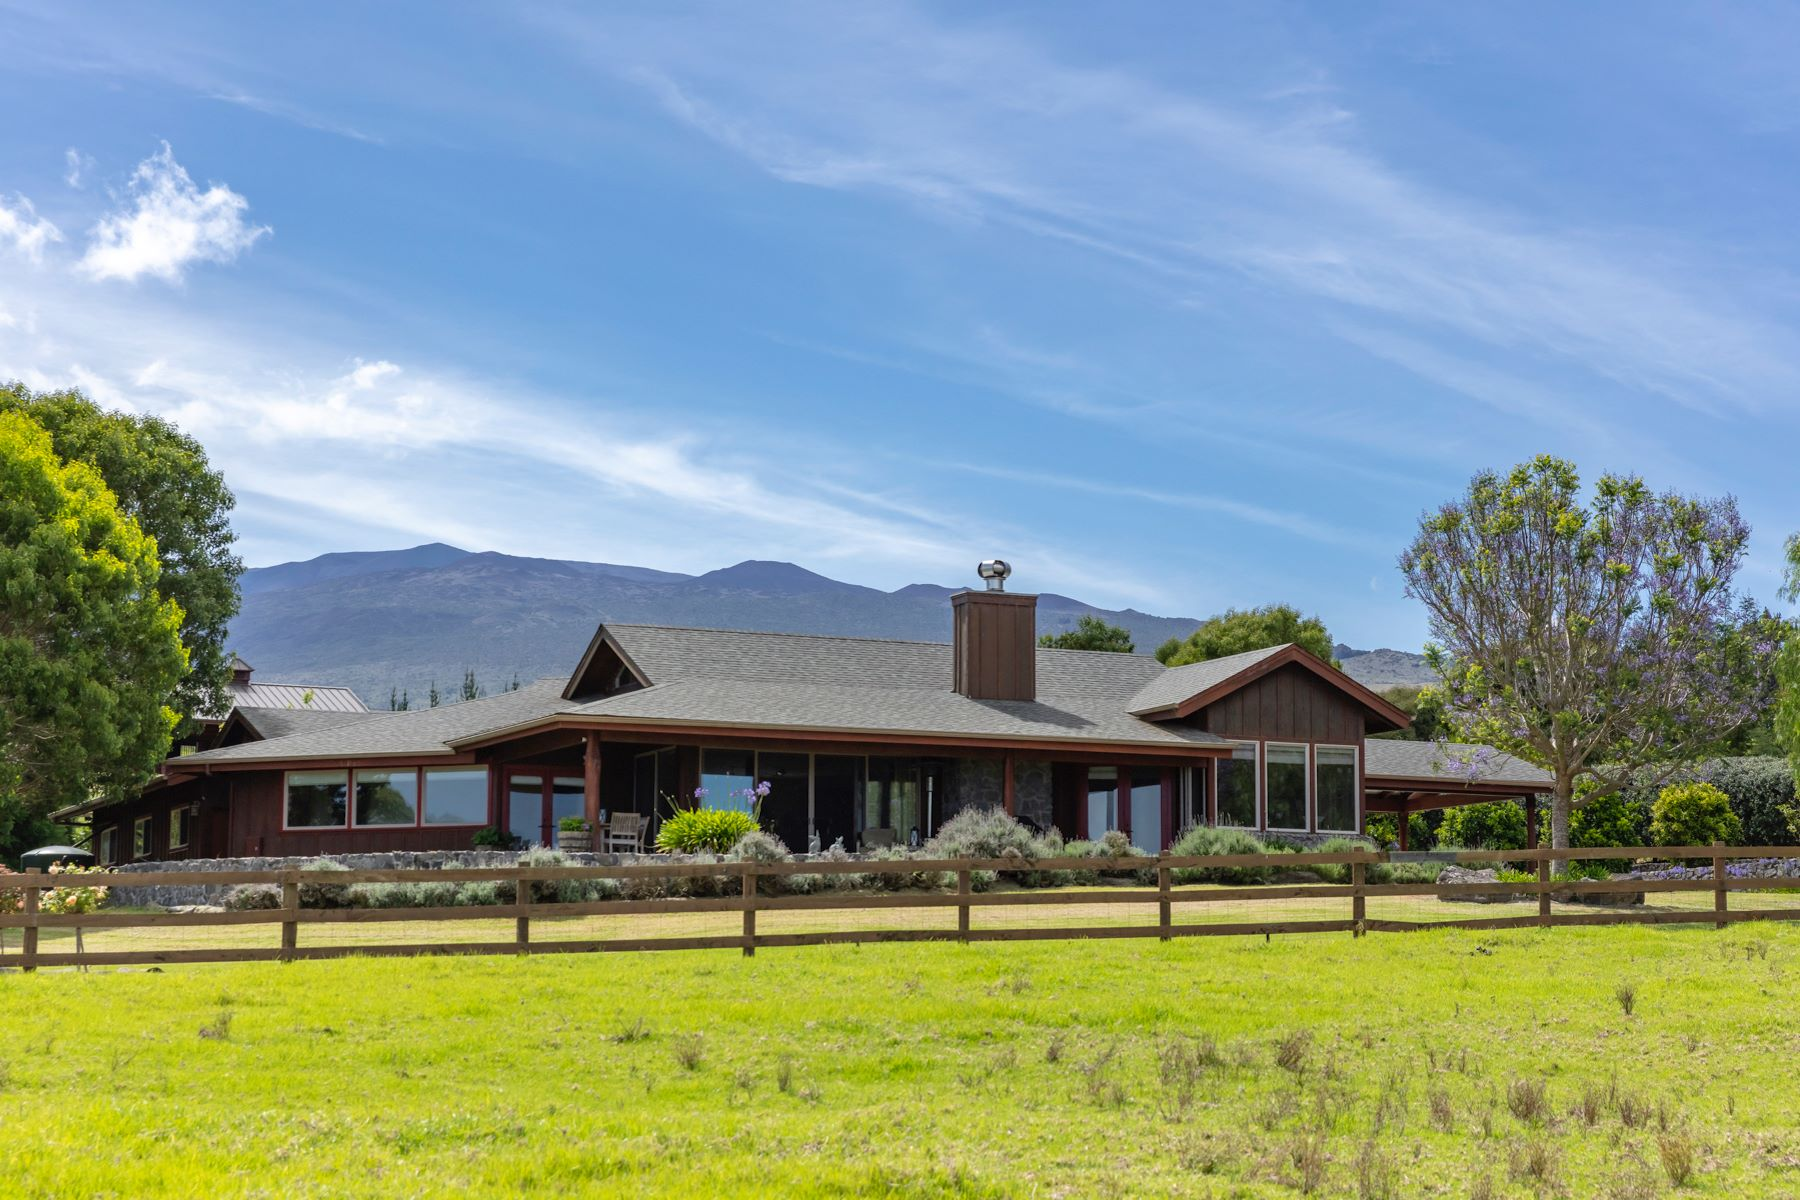 Single Family Homes for Active at Refined Country Living 67-1095 N. Alulike Rd. Kamuela, Hawaii 96743 United States